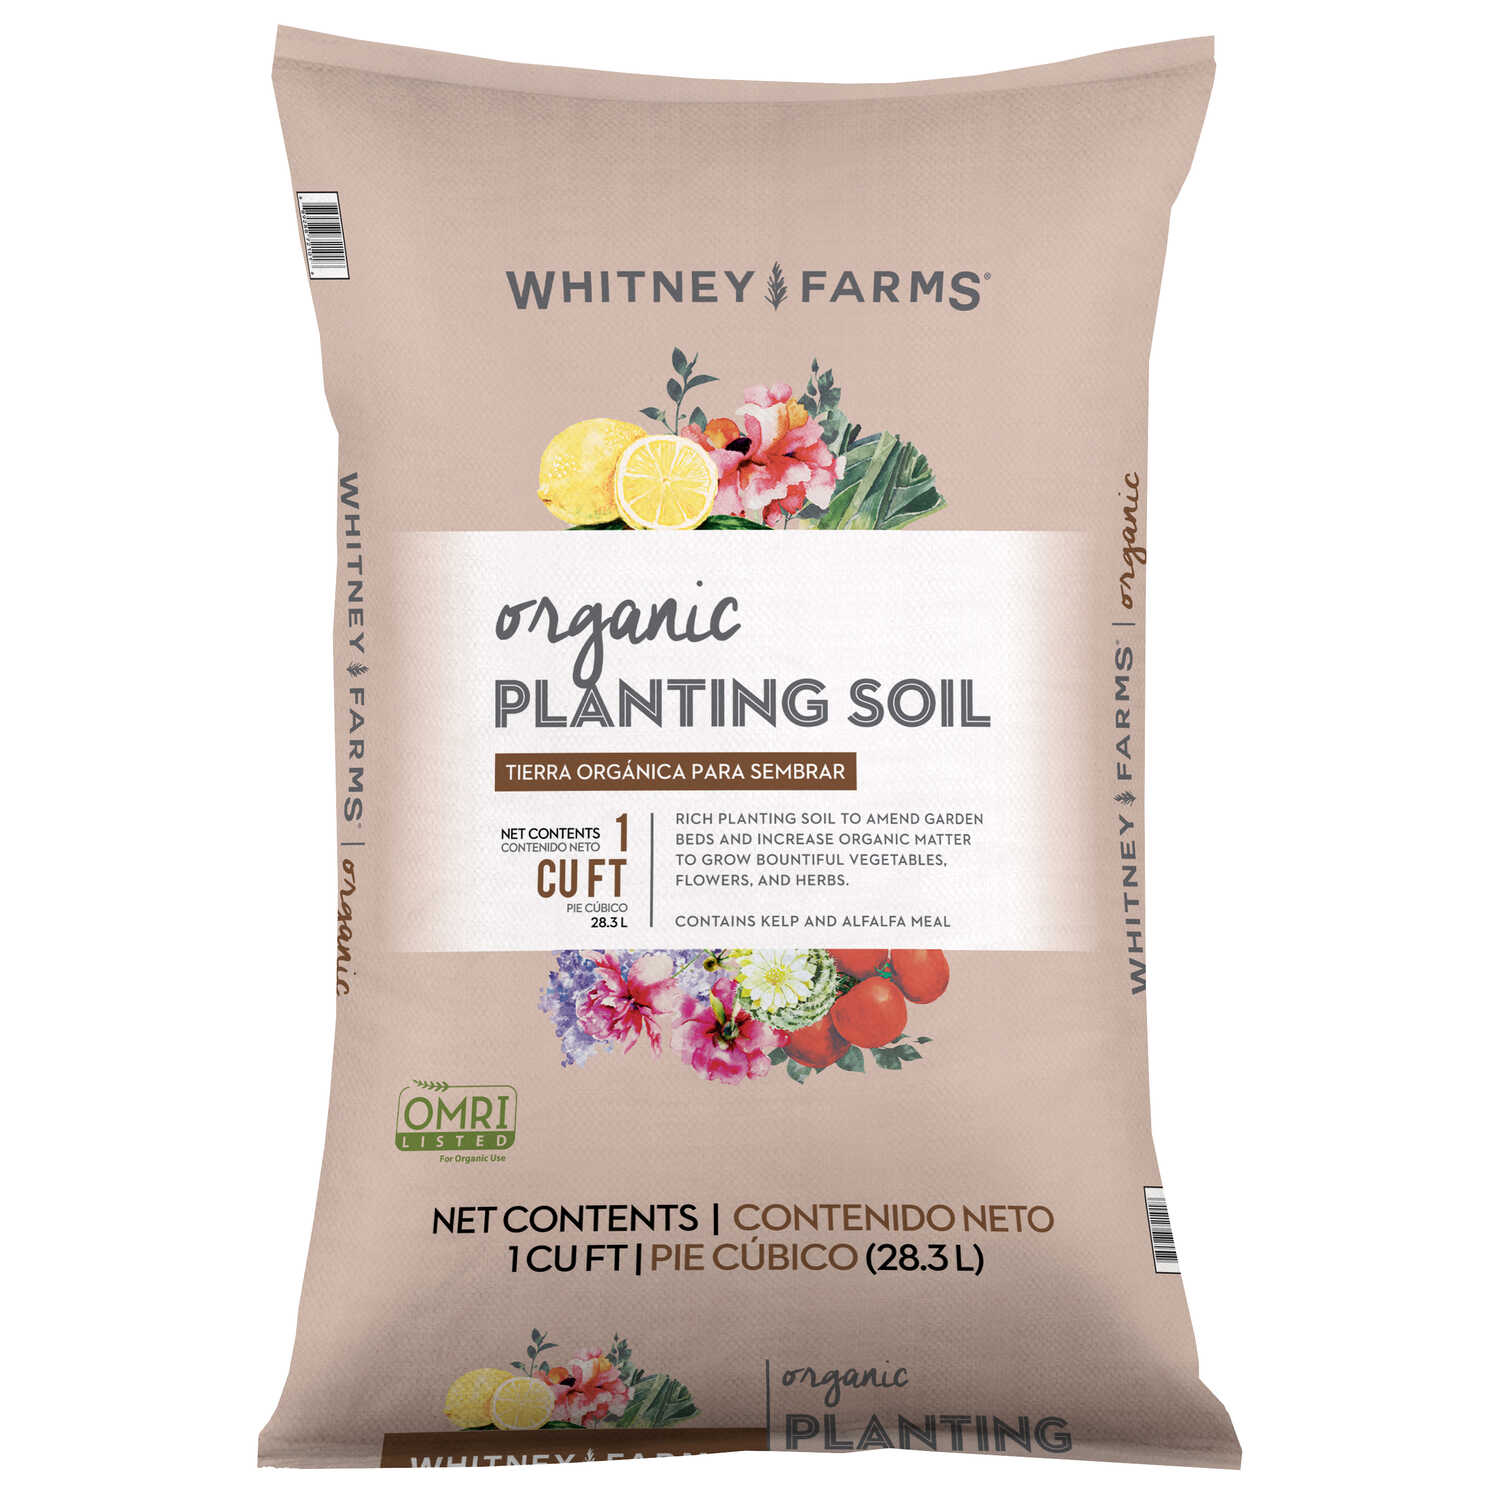 Whitney Farms  Planting Soil  1 cu. ft. Organic